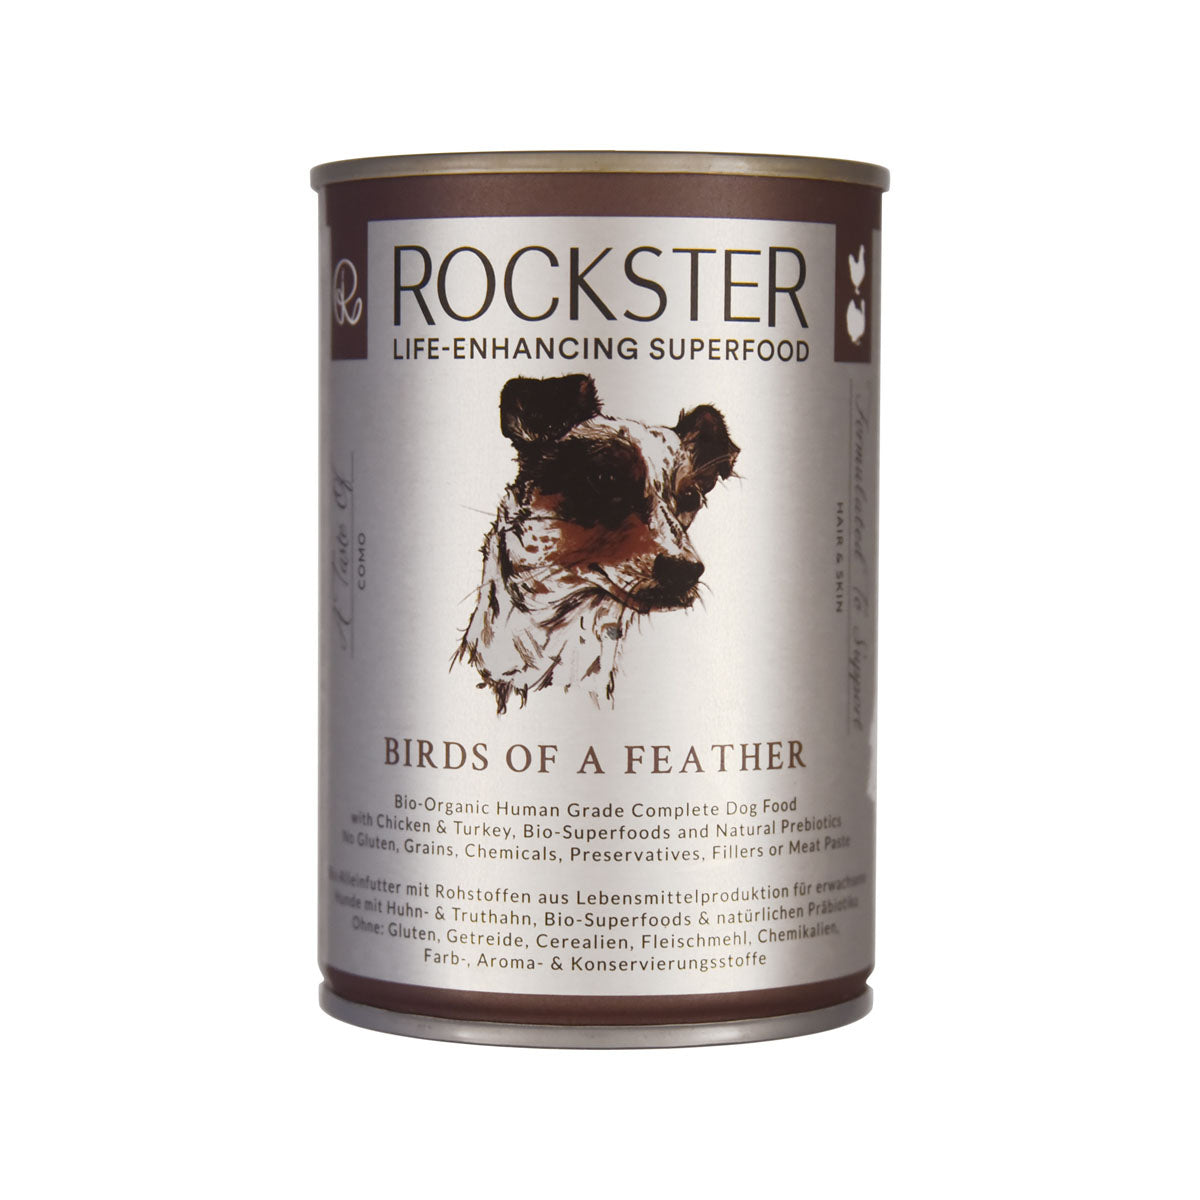 BIRDS OF A FEATHER - Chicken Superfood for Dogs | The Rockster - The ...